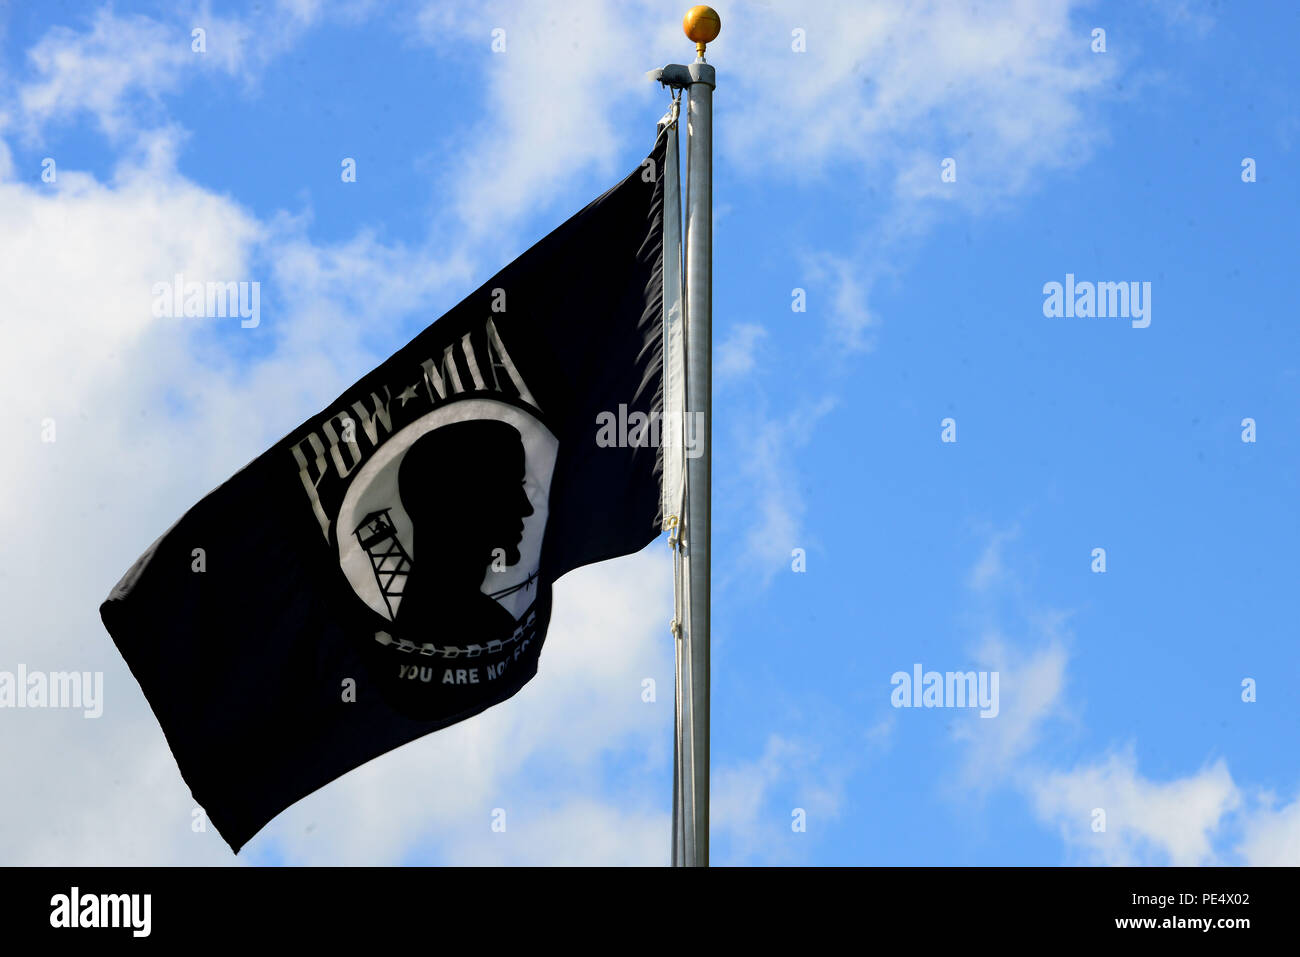 The Prisoner of War/Missing in Action flag waves during the Joint